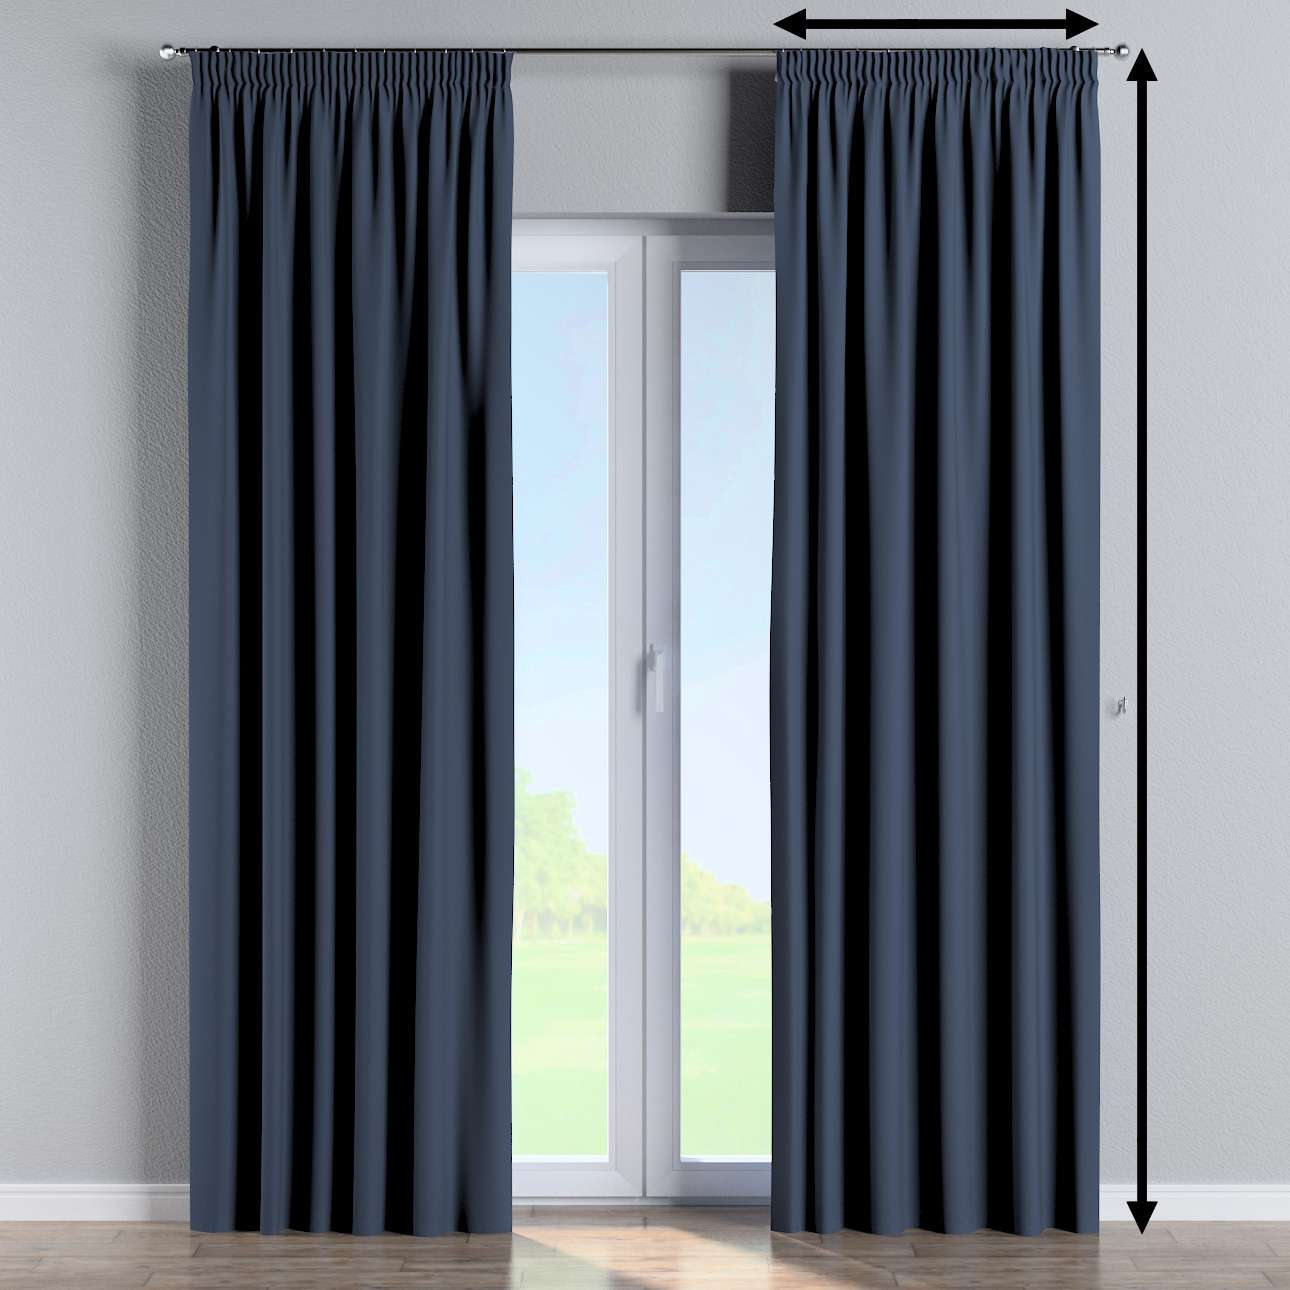 Blackout pencil pleat curtain in collection Blackout, fabric: 269-16